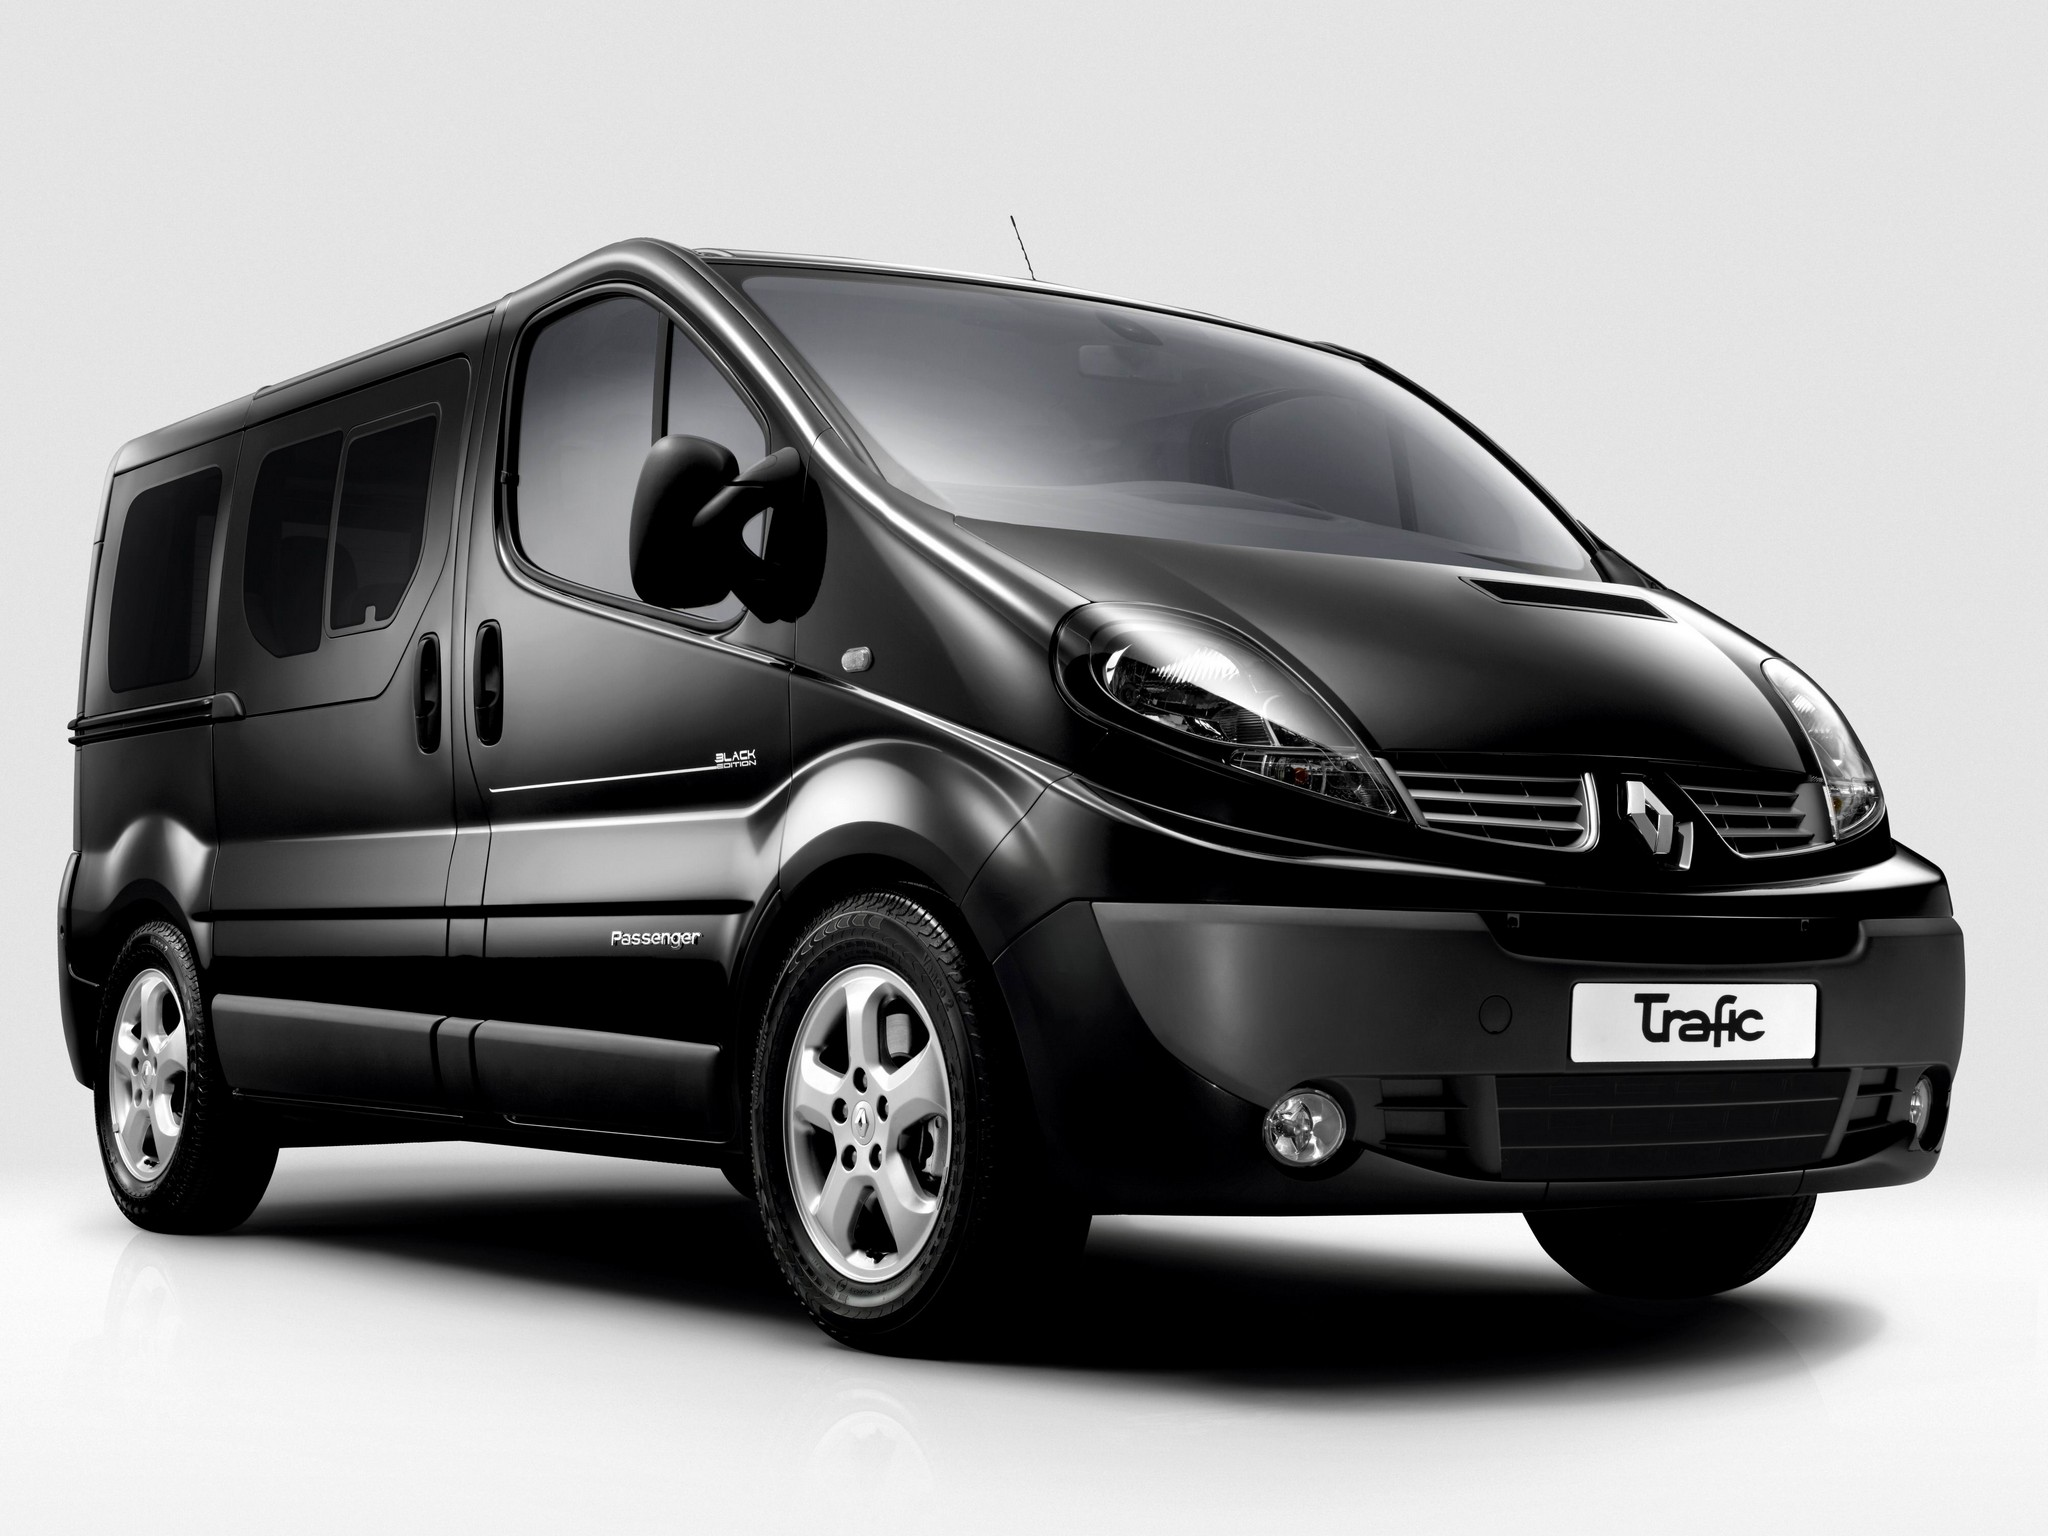 2012 renault trafic partsopen. Black Bedroom Furniture Sets. Home Design Ideas